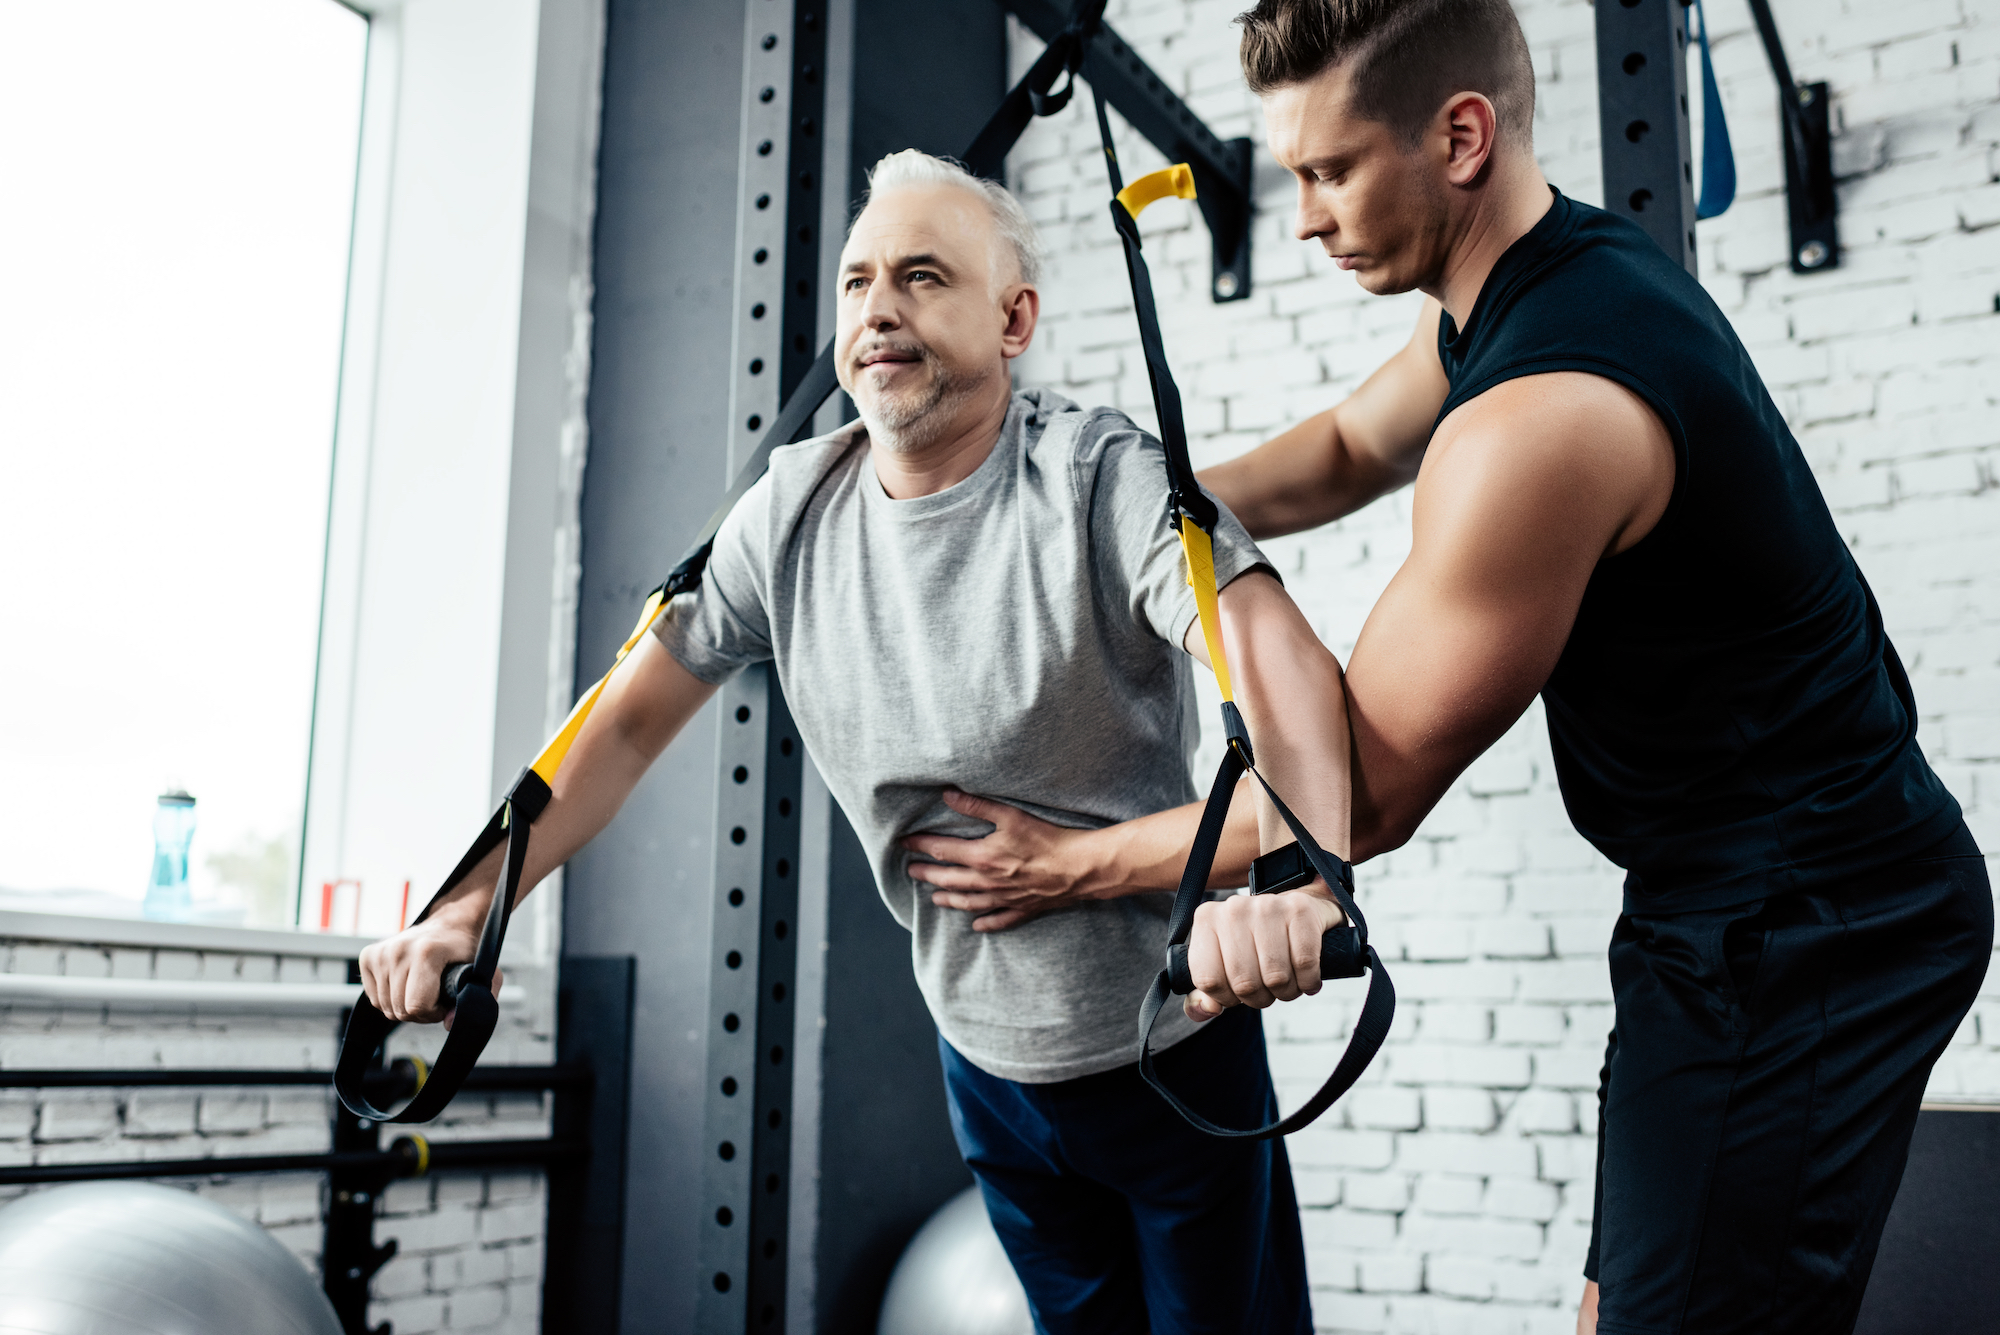 older man with wall mounted resistance bands doing body weight exercises